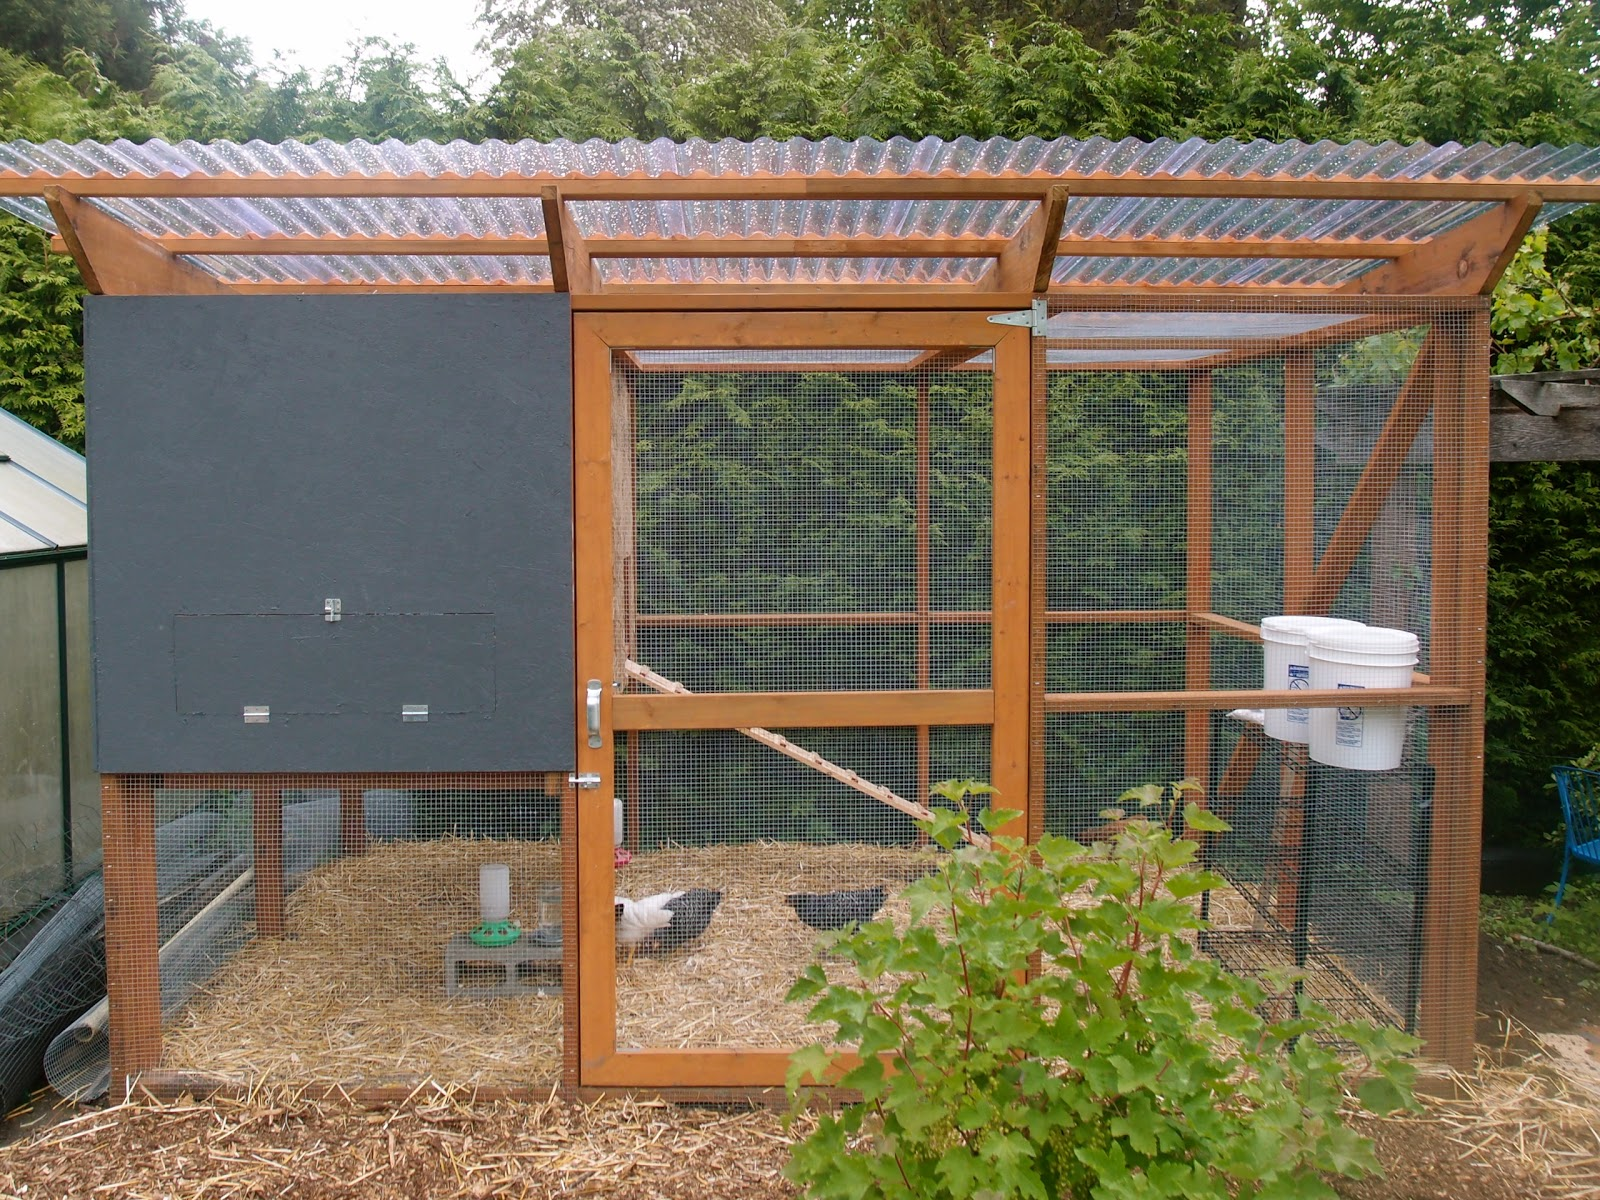 The chicken coop is done enough northwest edible life for Plans for chicken coops